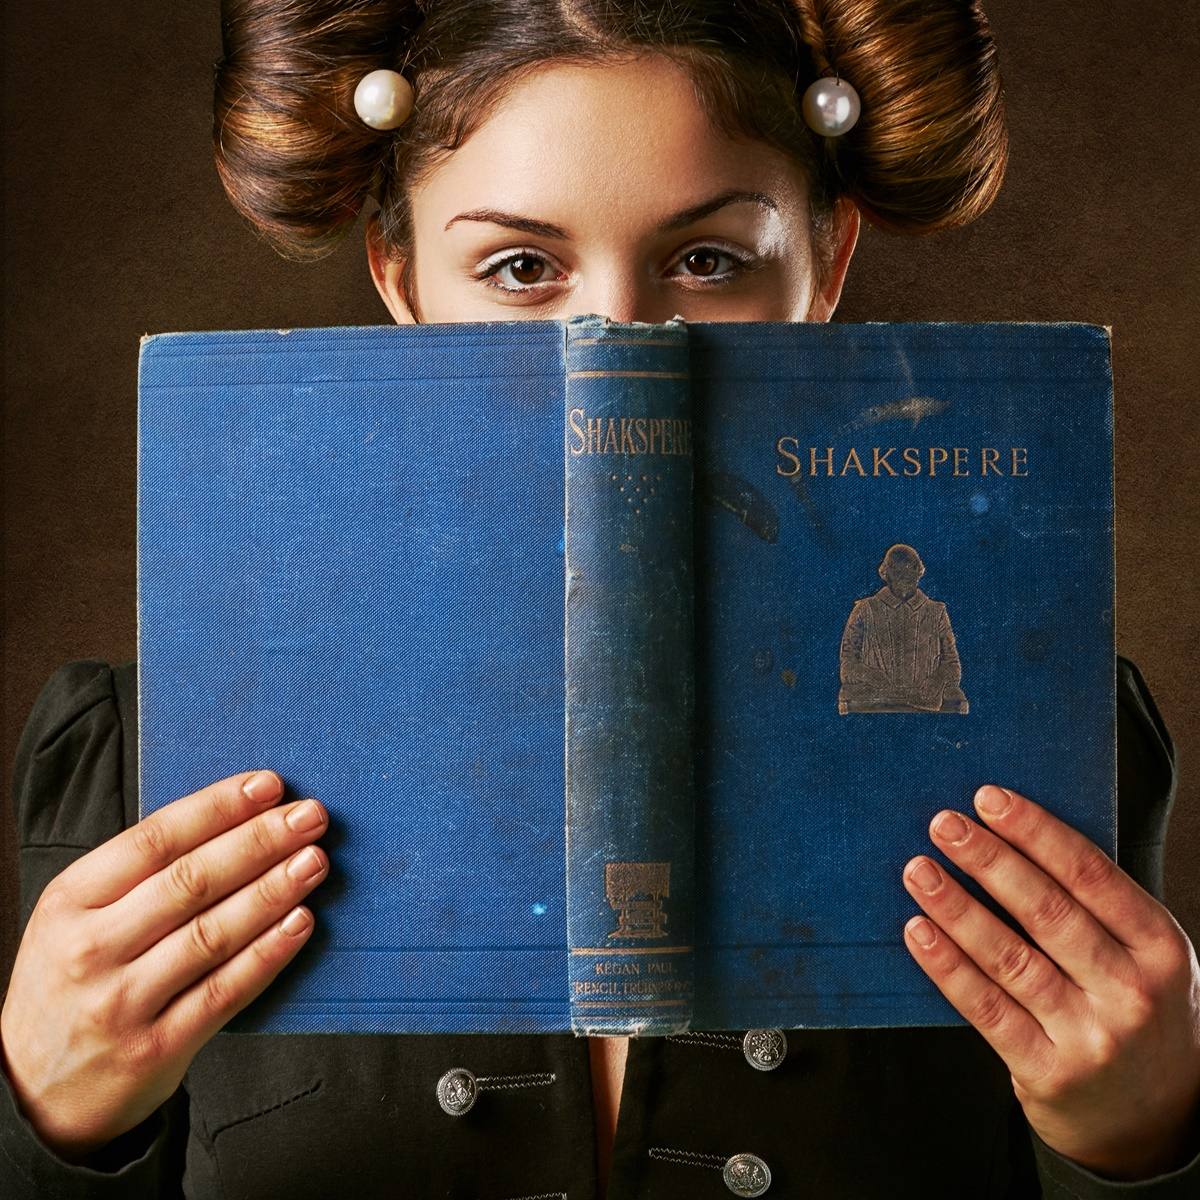 Shakespeare Quotes About Friendship, image of a woman with her hair in two buns holds a blue Shakespeare book in front of her face, books